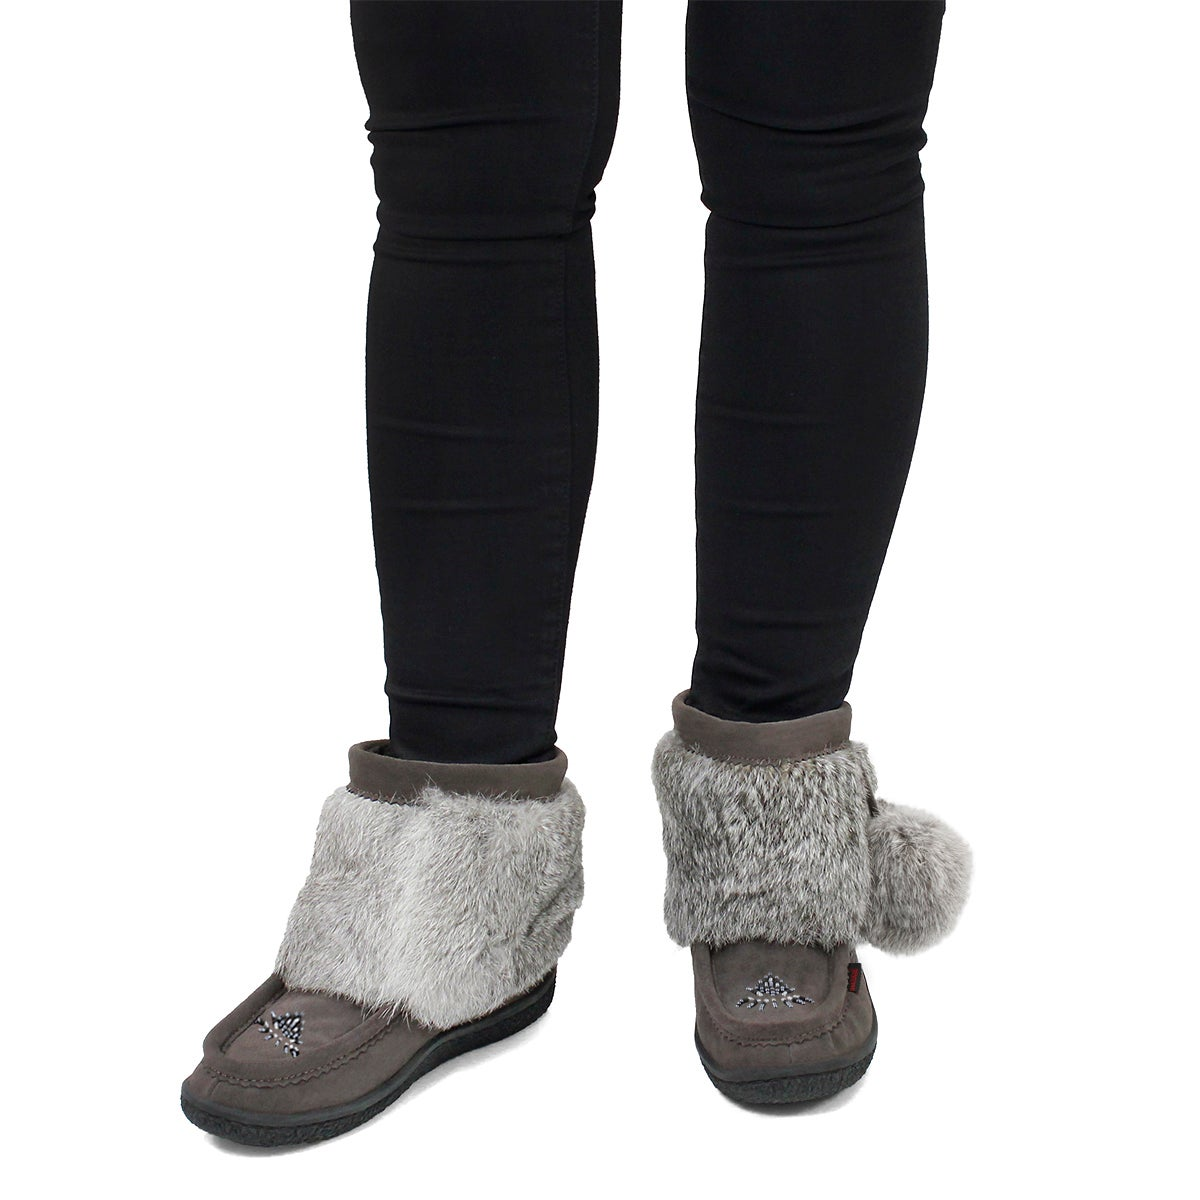 Lds Minimuk Pom grey rabbit fur bootie